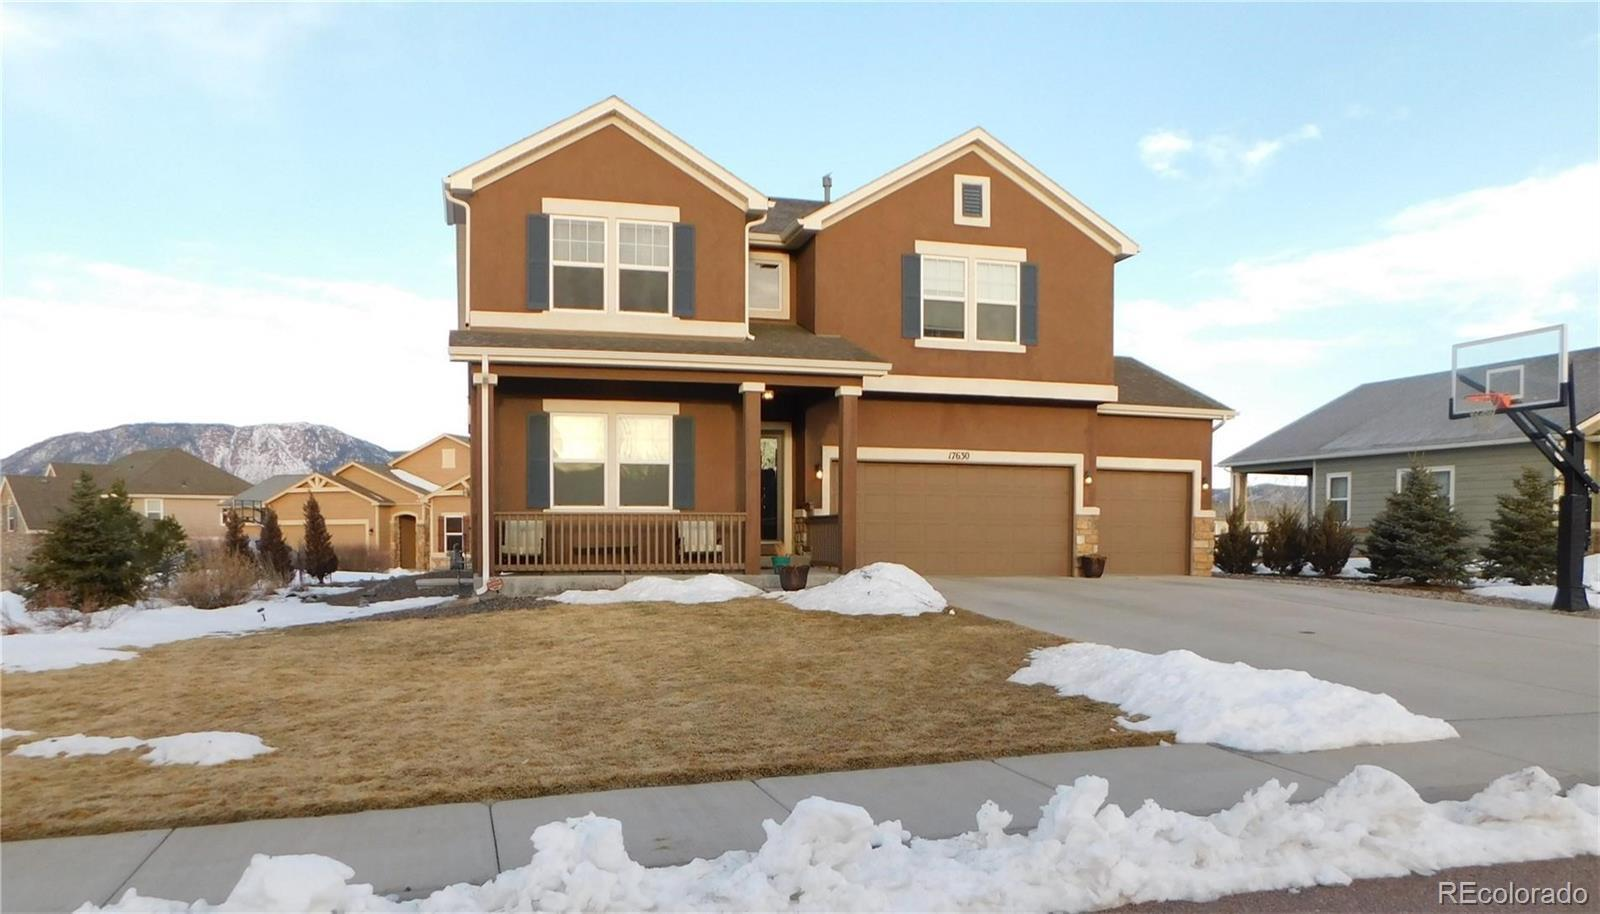 17630 Water Flume Way, Monument, CO 80132 - MLS#: 1577769